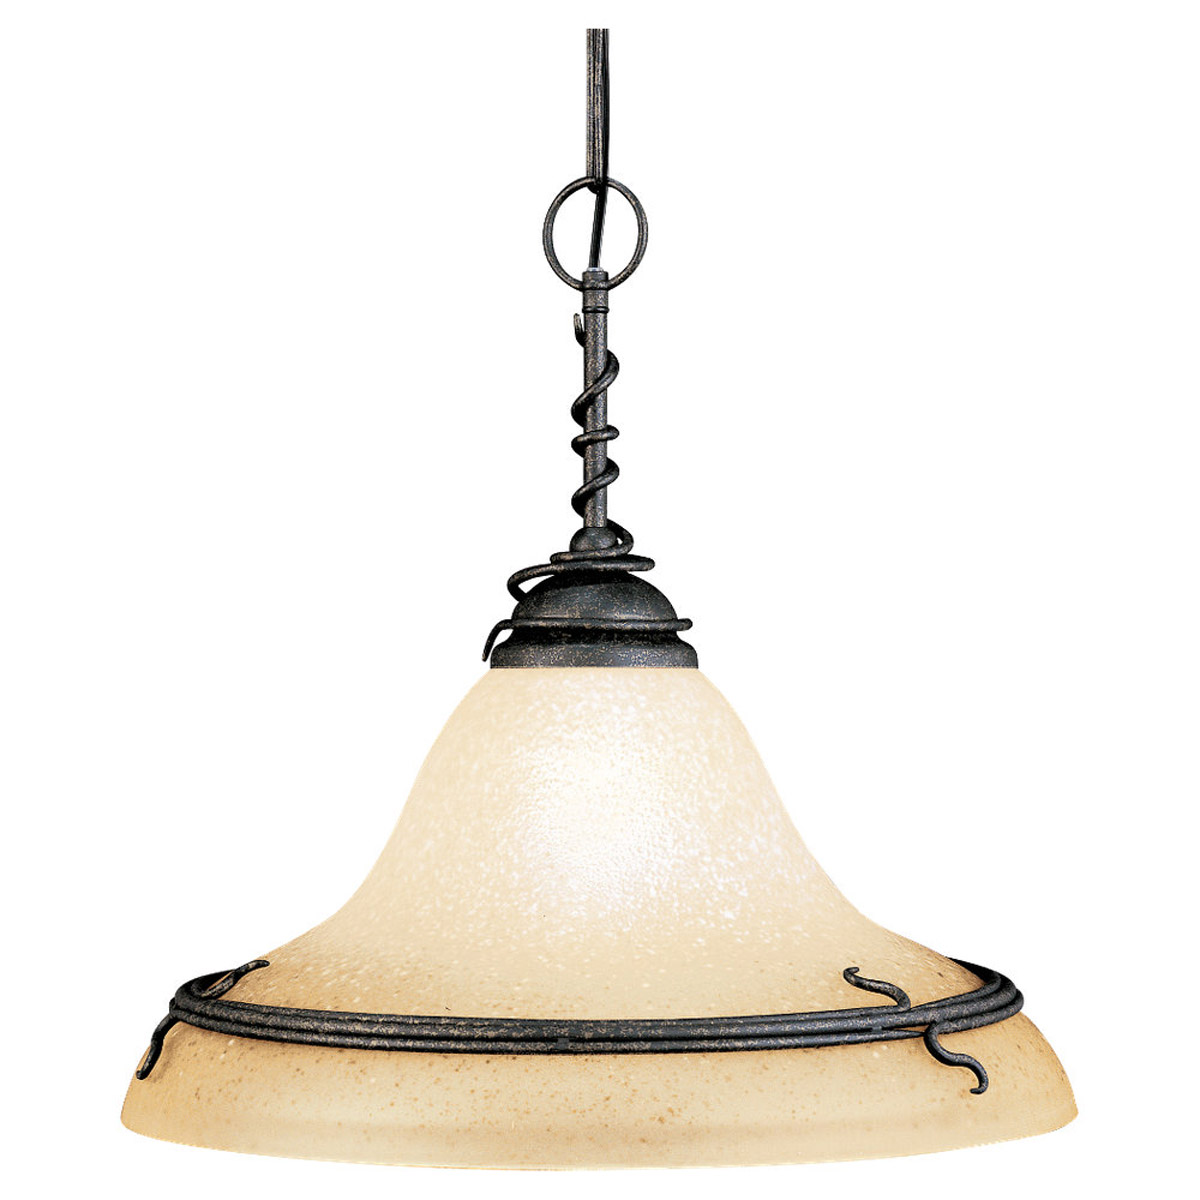 Sea Gull Lighting Saranac Lake 1 Light Pendant in Forged Iron 6610-185 photo